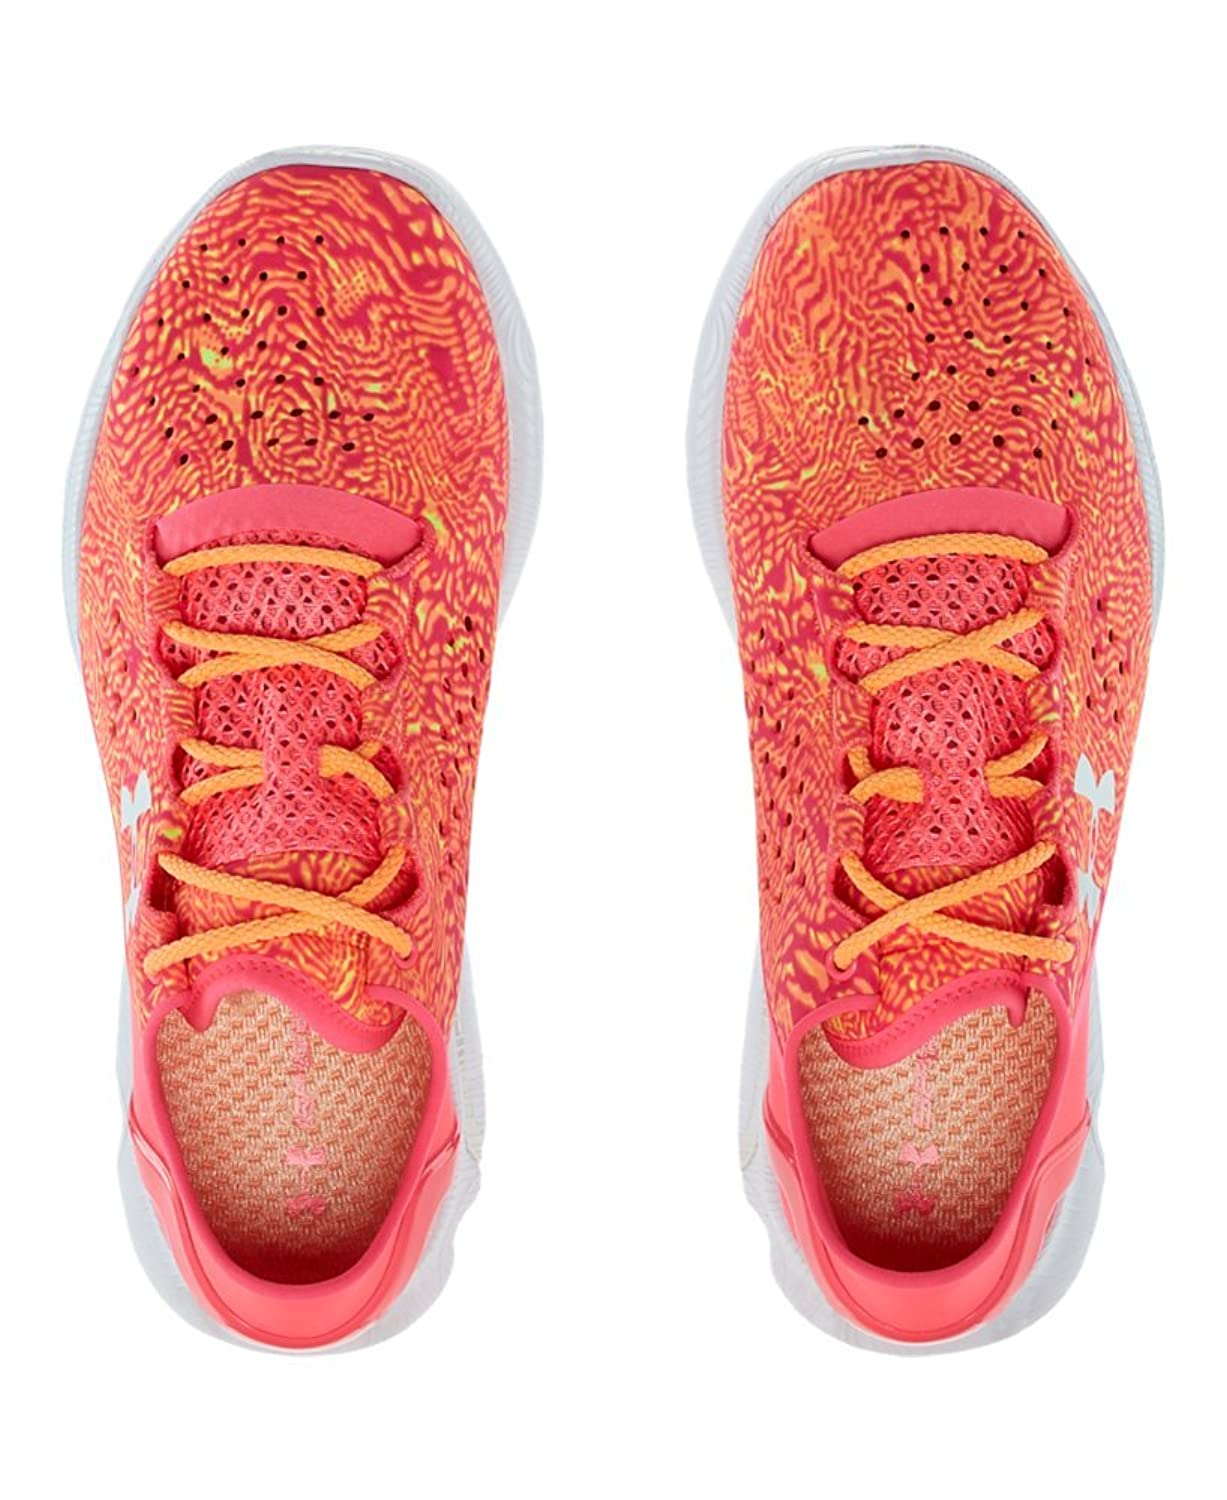 Under Armour Zapatos Para Correr 10.5 Namyl